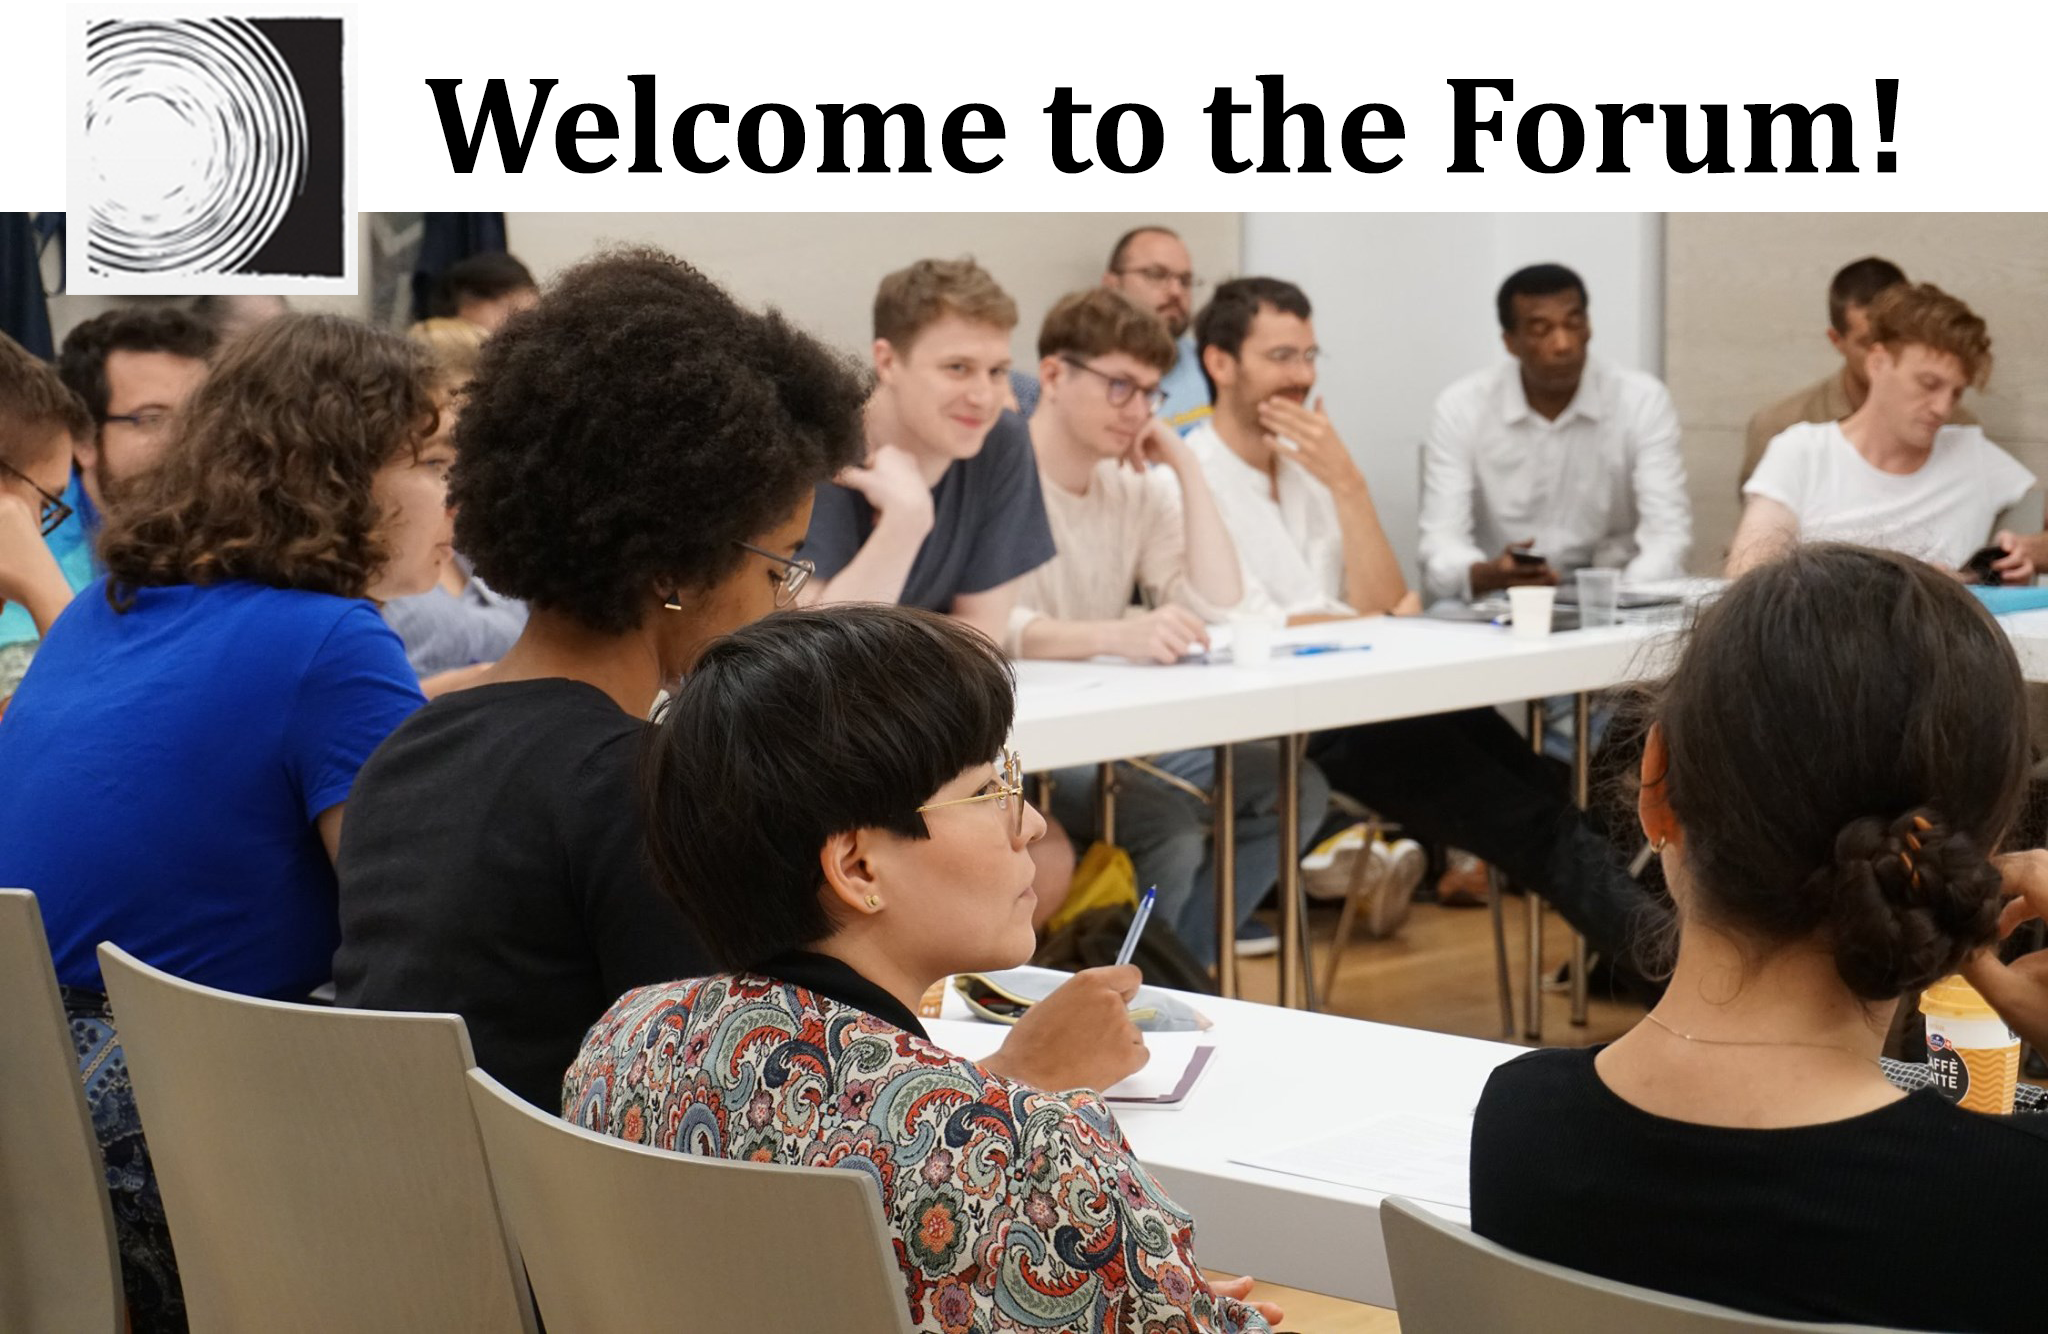 forum-welcome-pic